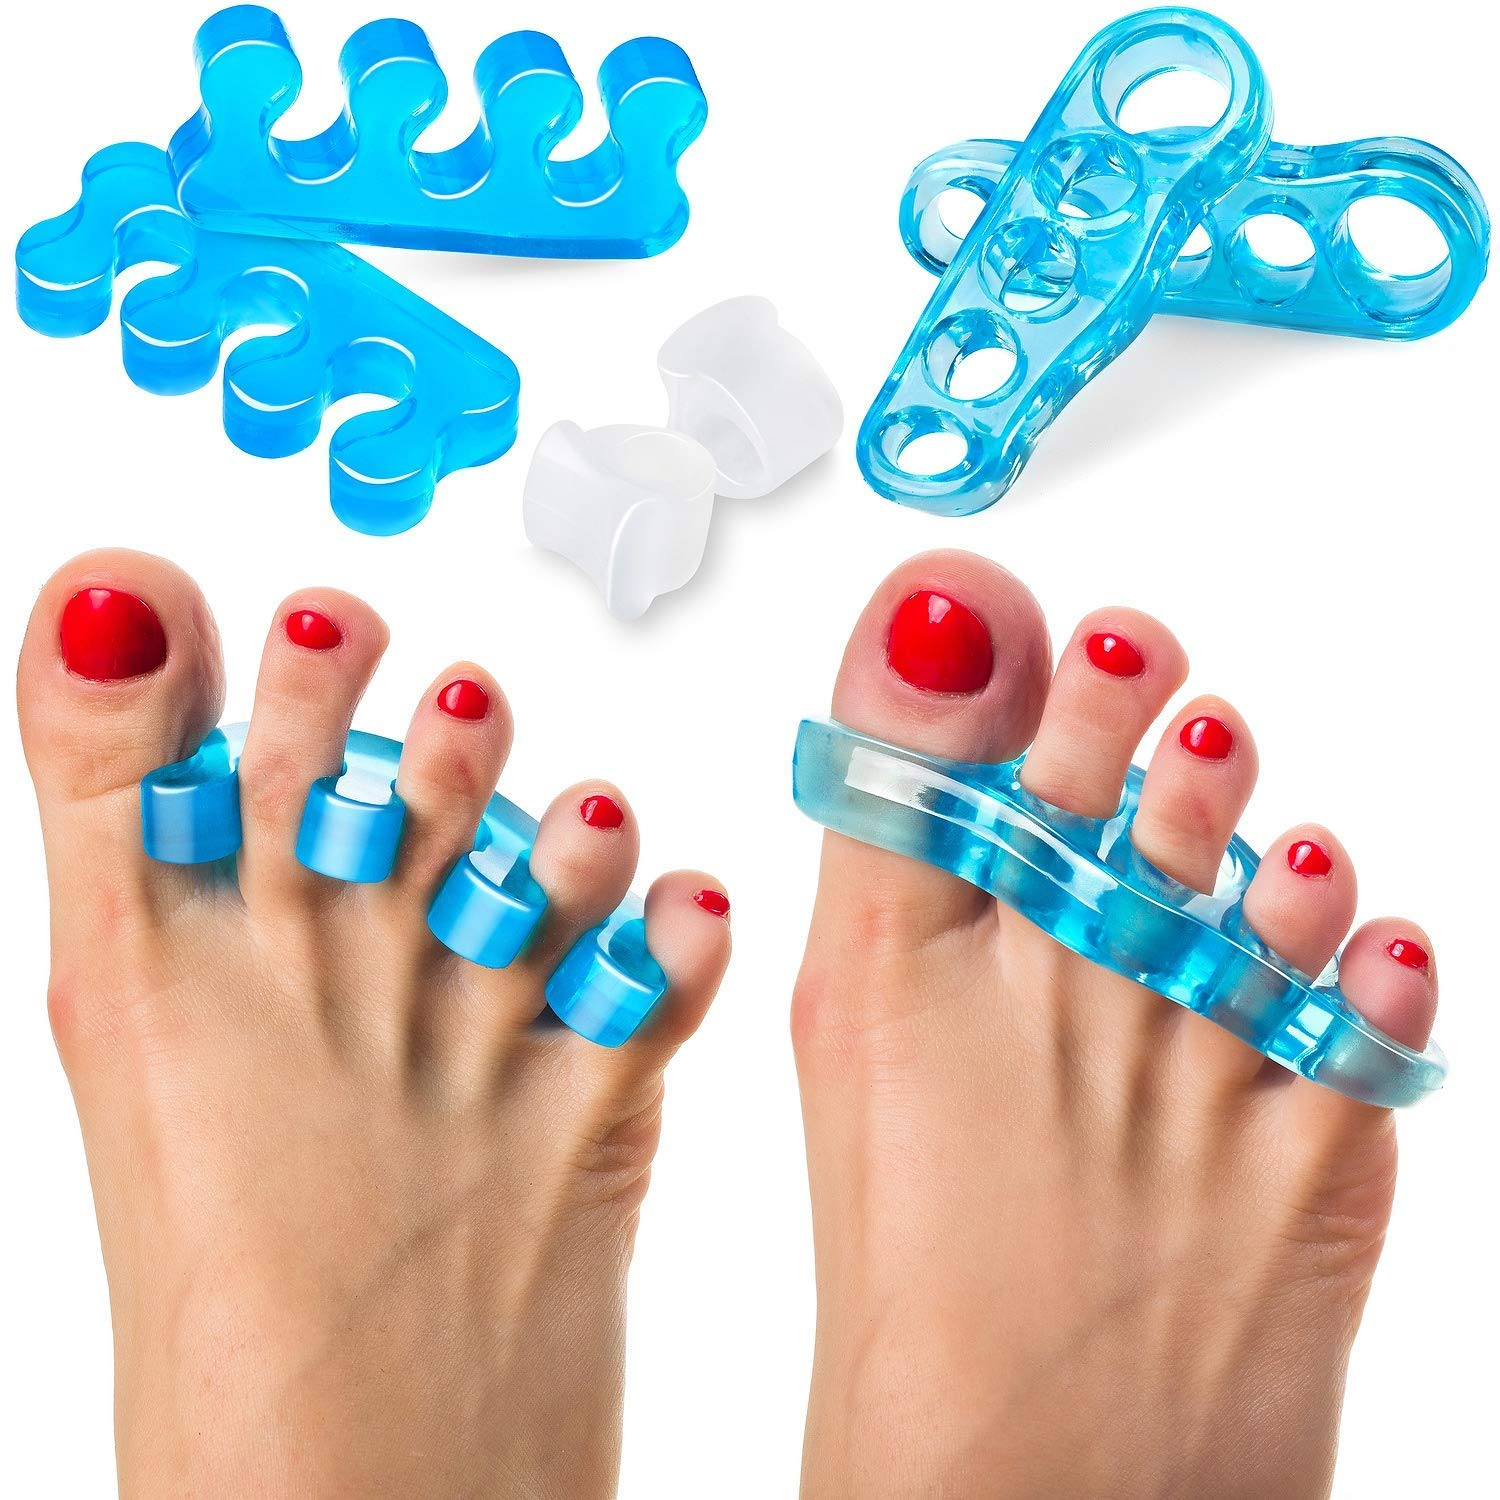 Toe Separators and Toe Streightener Restore Toes to Their Original Shape Gel Toe Stretcher Toe Spacers for Women and Men Hammer Toes Bunion Corrector Relaxing Toes by RAYNA GAMES